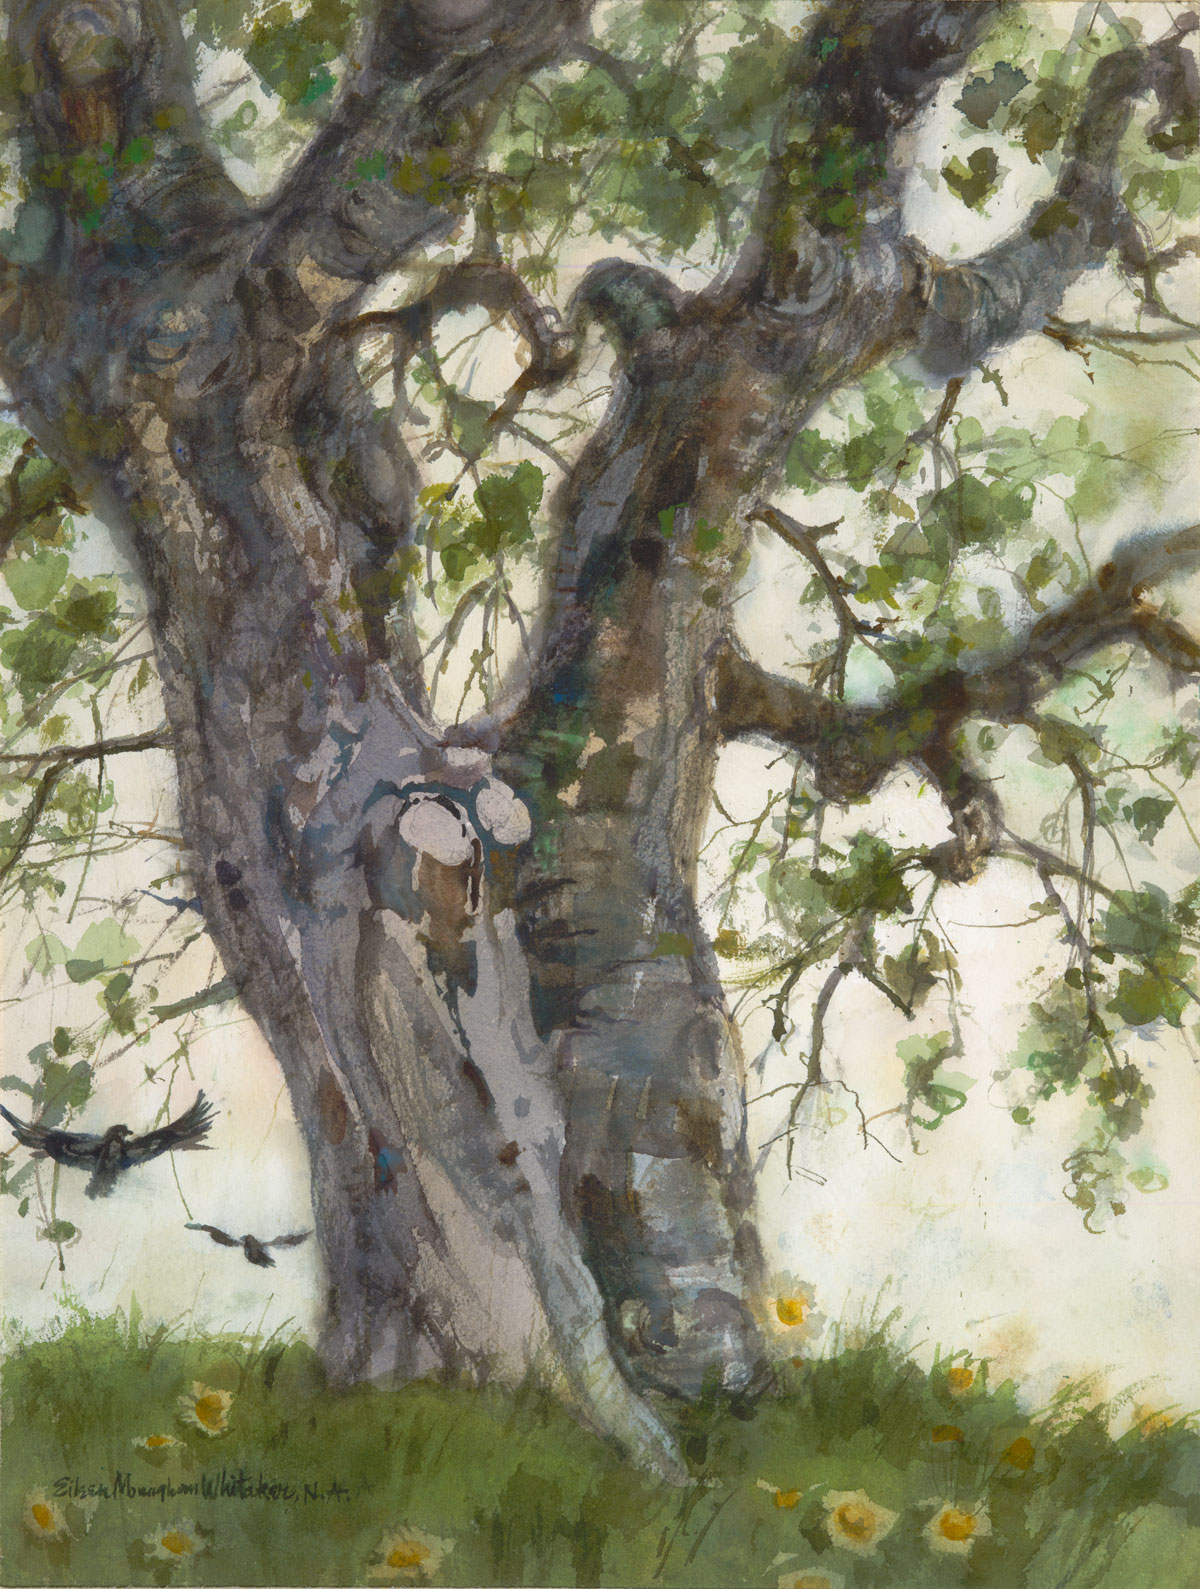 """Eucalyptus Trees © Eileen Monaghan Whitaker 14x22 (date unknown) Watercolor"